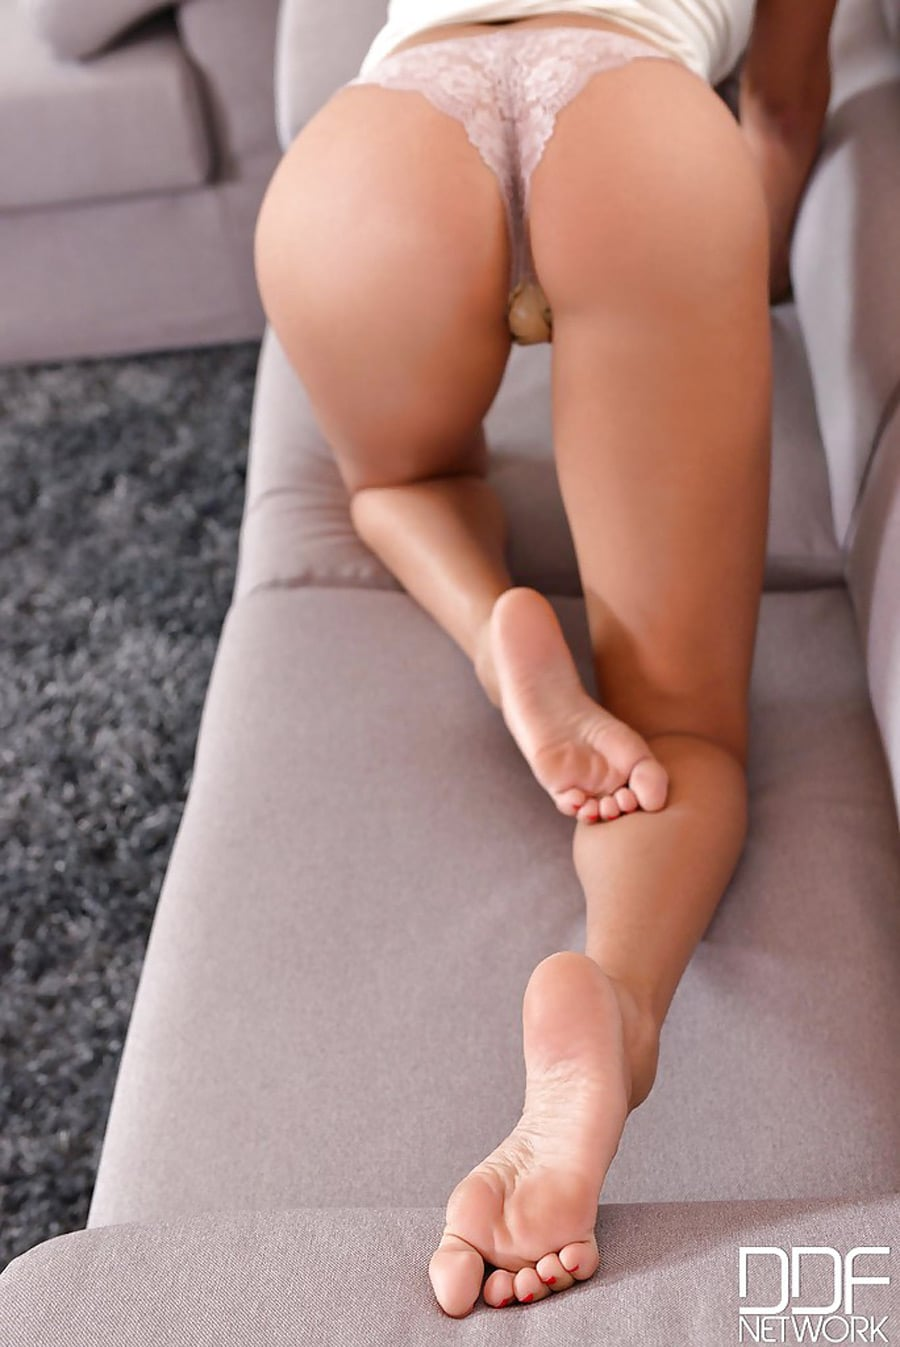 Thank Naked hairy milfs legs and feet very valuable